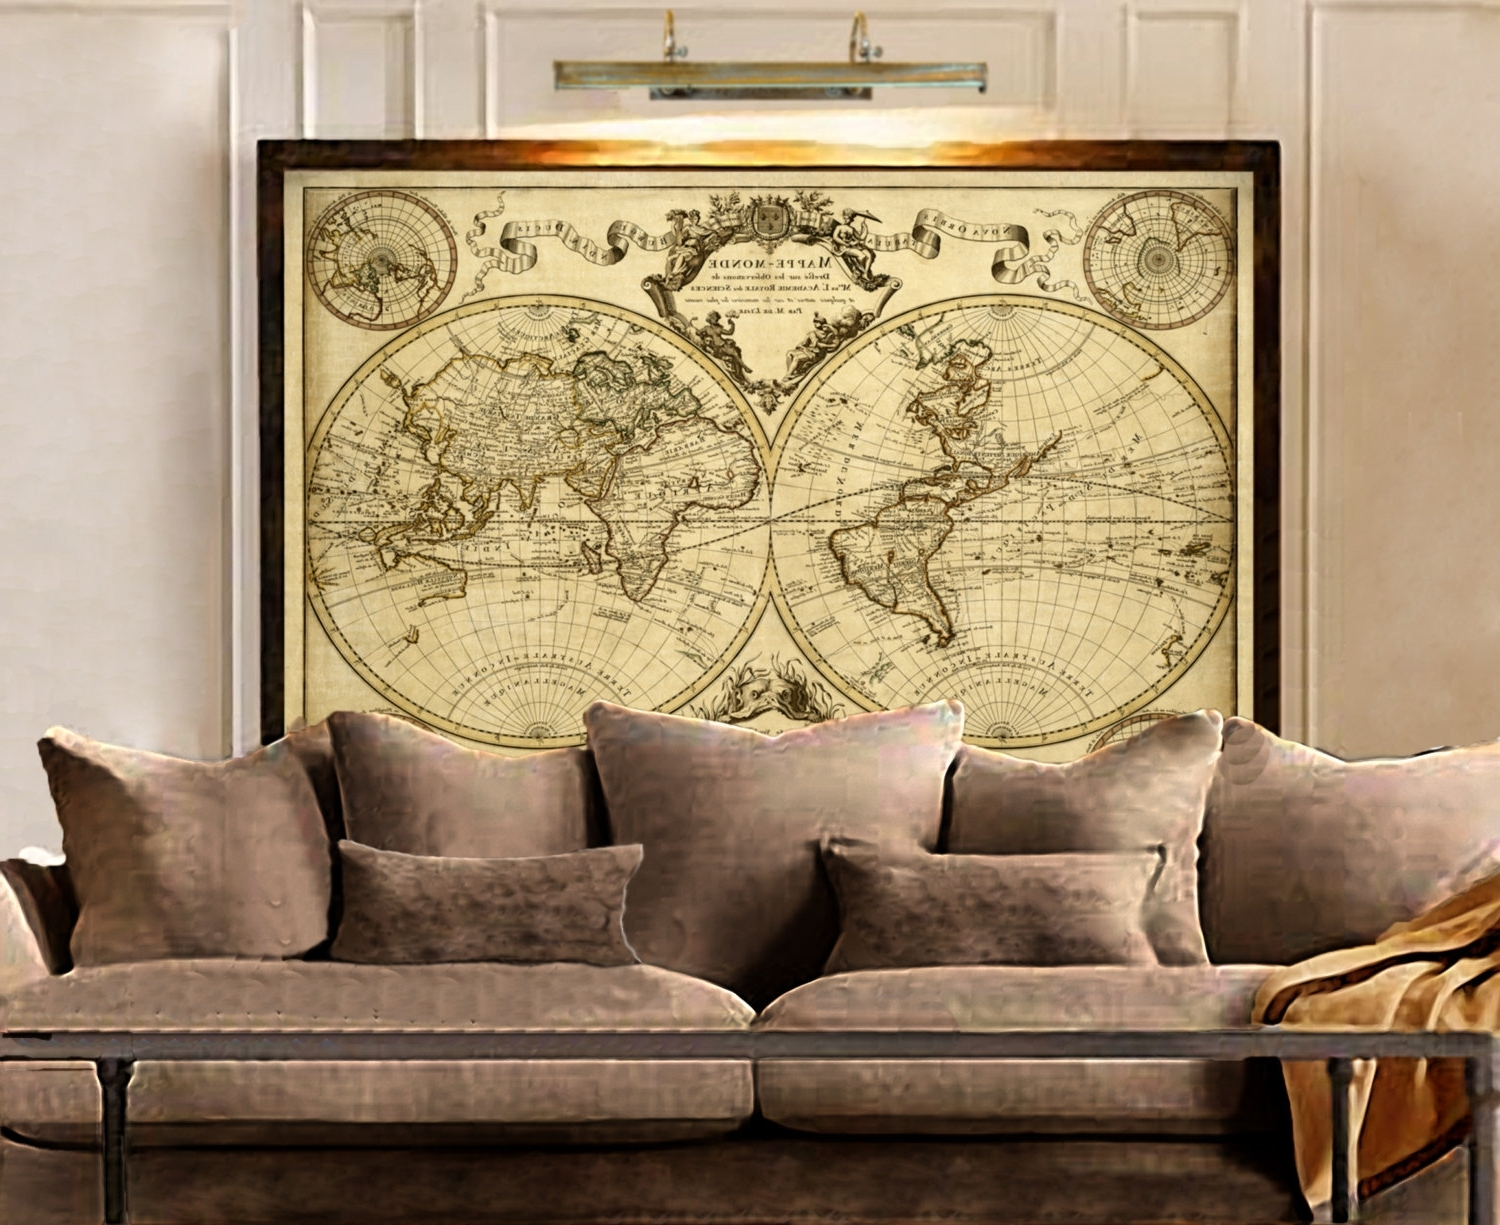 Current Beautiful Southwest Wall Art Decor Photos The Wall Art Decorations Within Cool Map Wall Art (View 3 of 15)